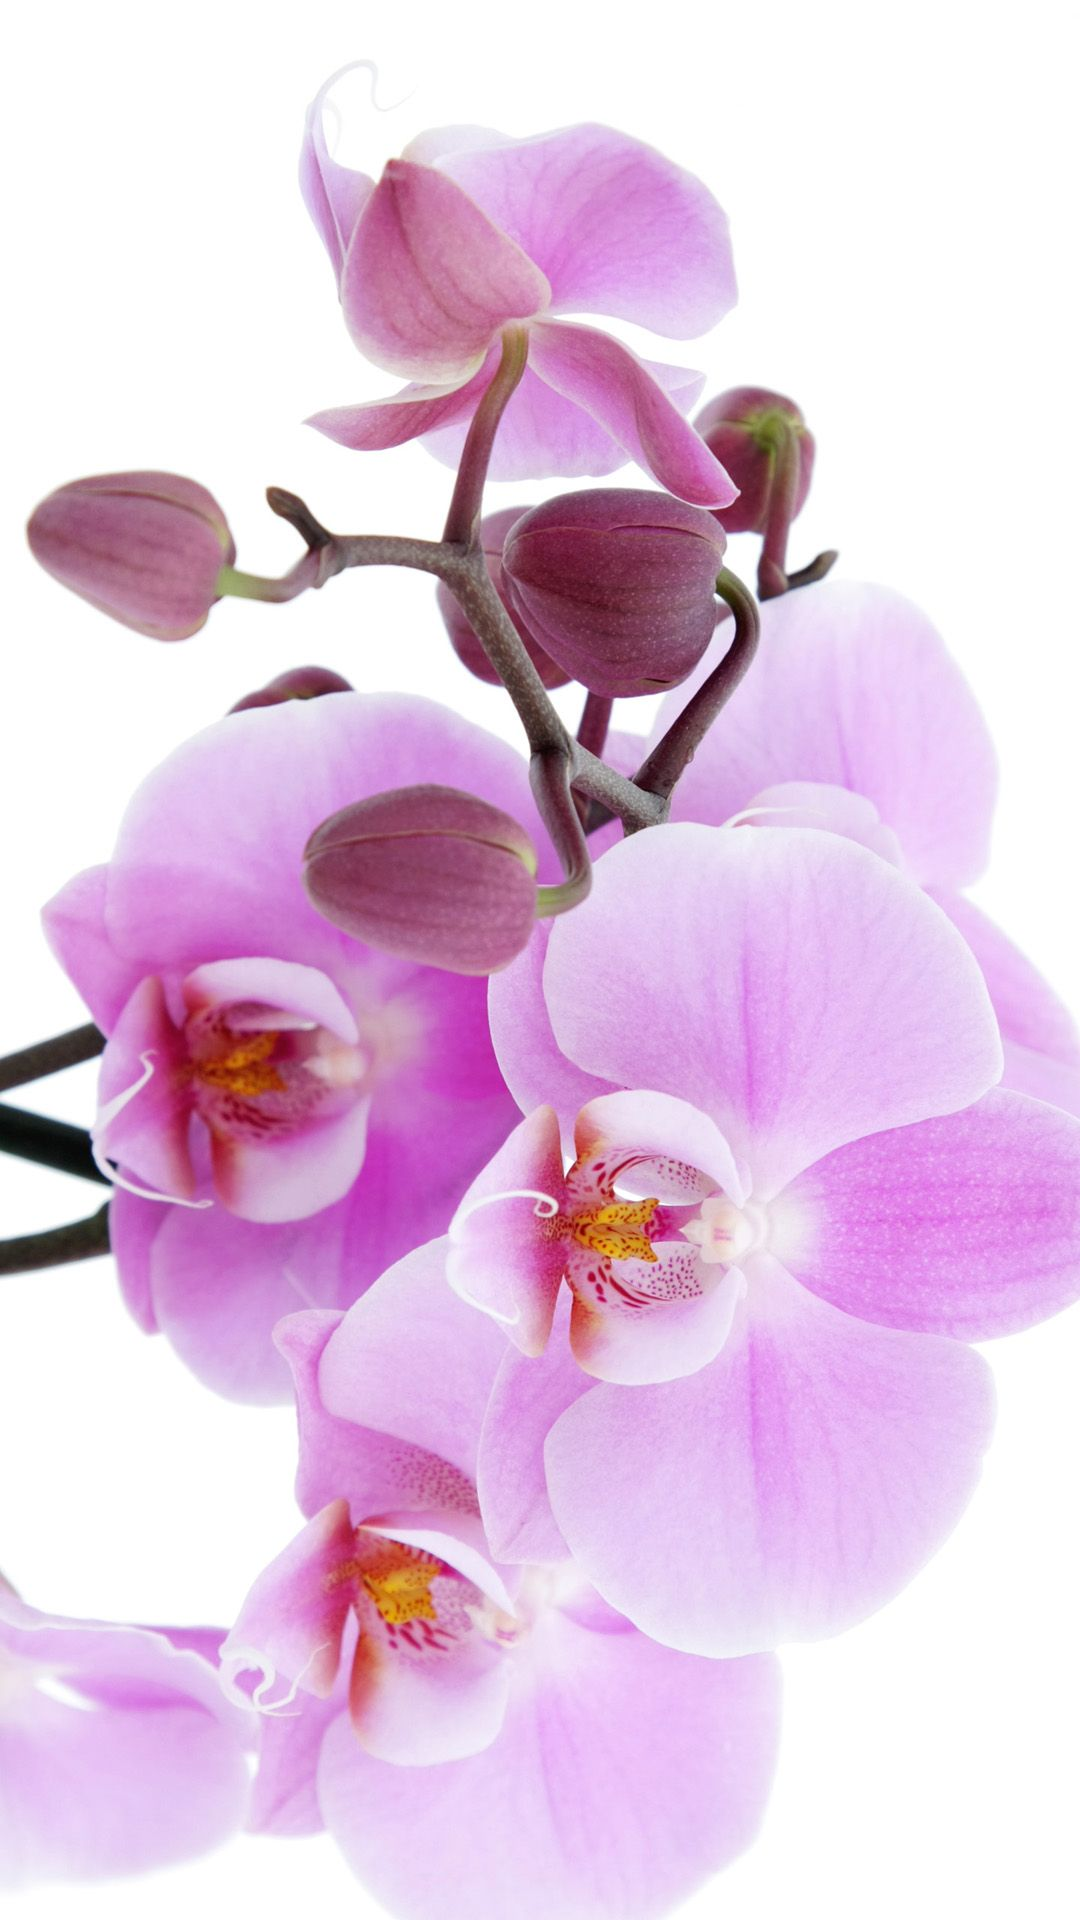 pure pink orchid iphone 6 wallpaper flower wallpaper